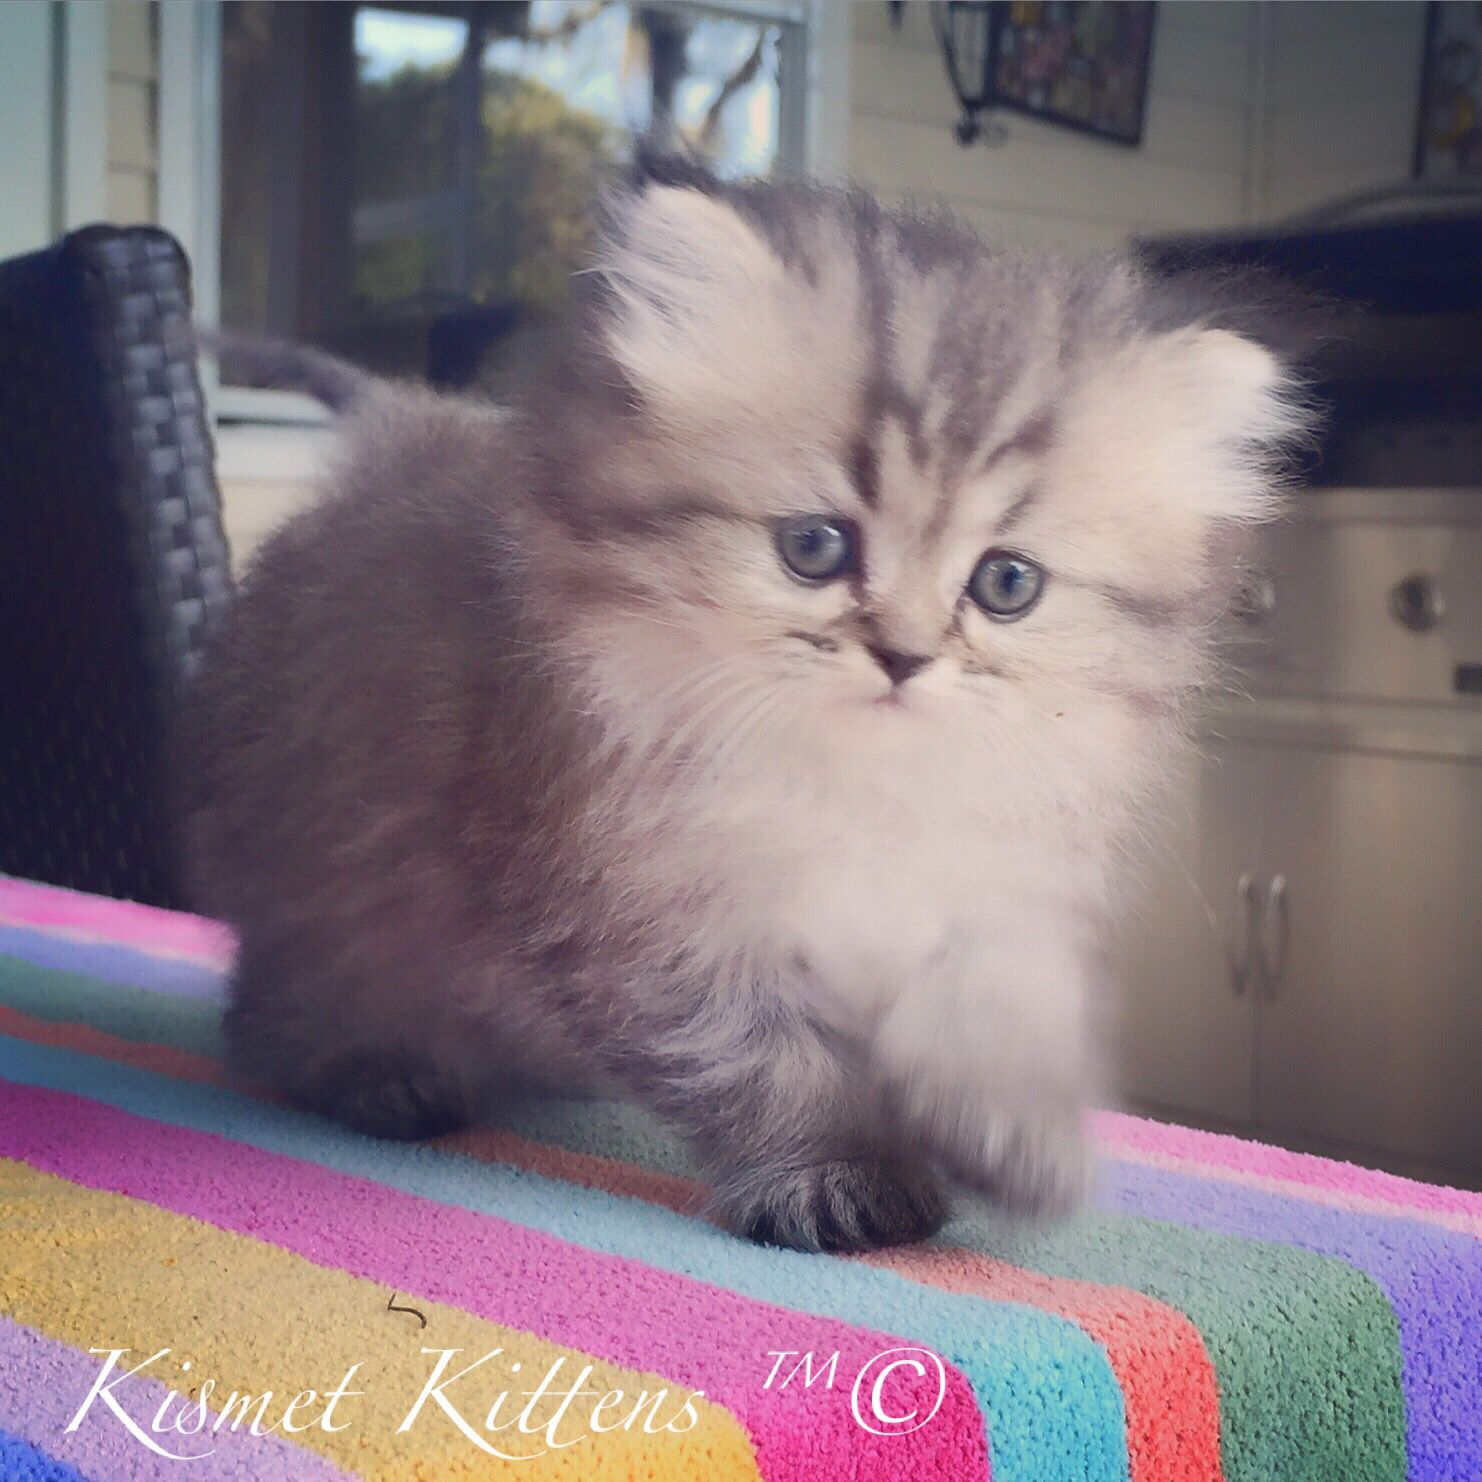 Kismet Kittens For Sale Silver Tabby Doll Face Persian Kitten Green Eyes Female 1 Yr Health Persian Kittens For Sale Persian Cat Doll Face Persian Kittens